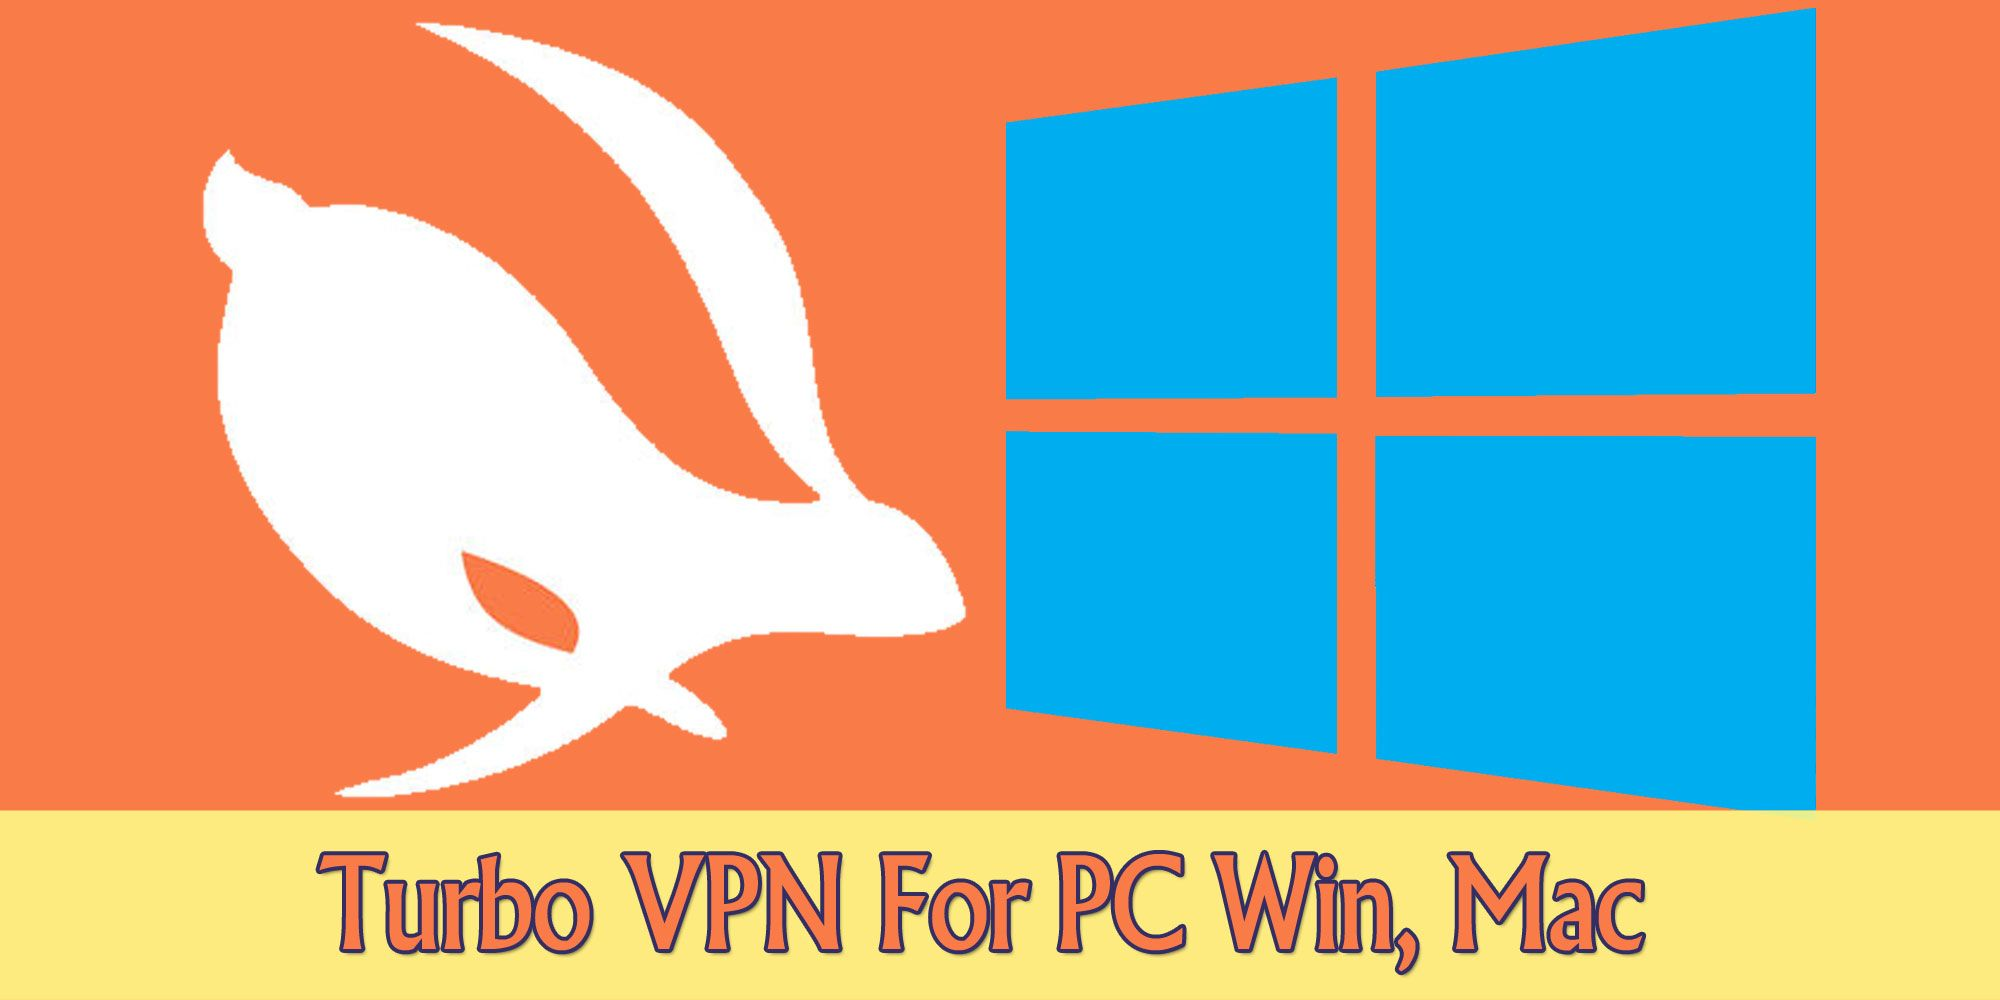 Turbo VPN For PC Windows 7/8/10 64/32bit, Mac - New Version